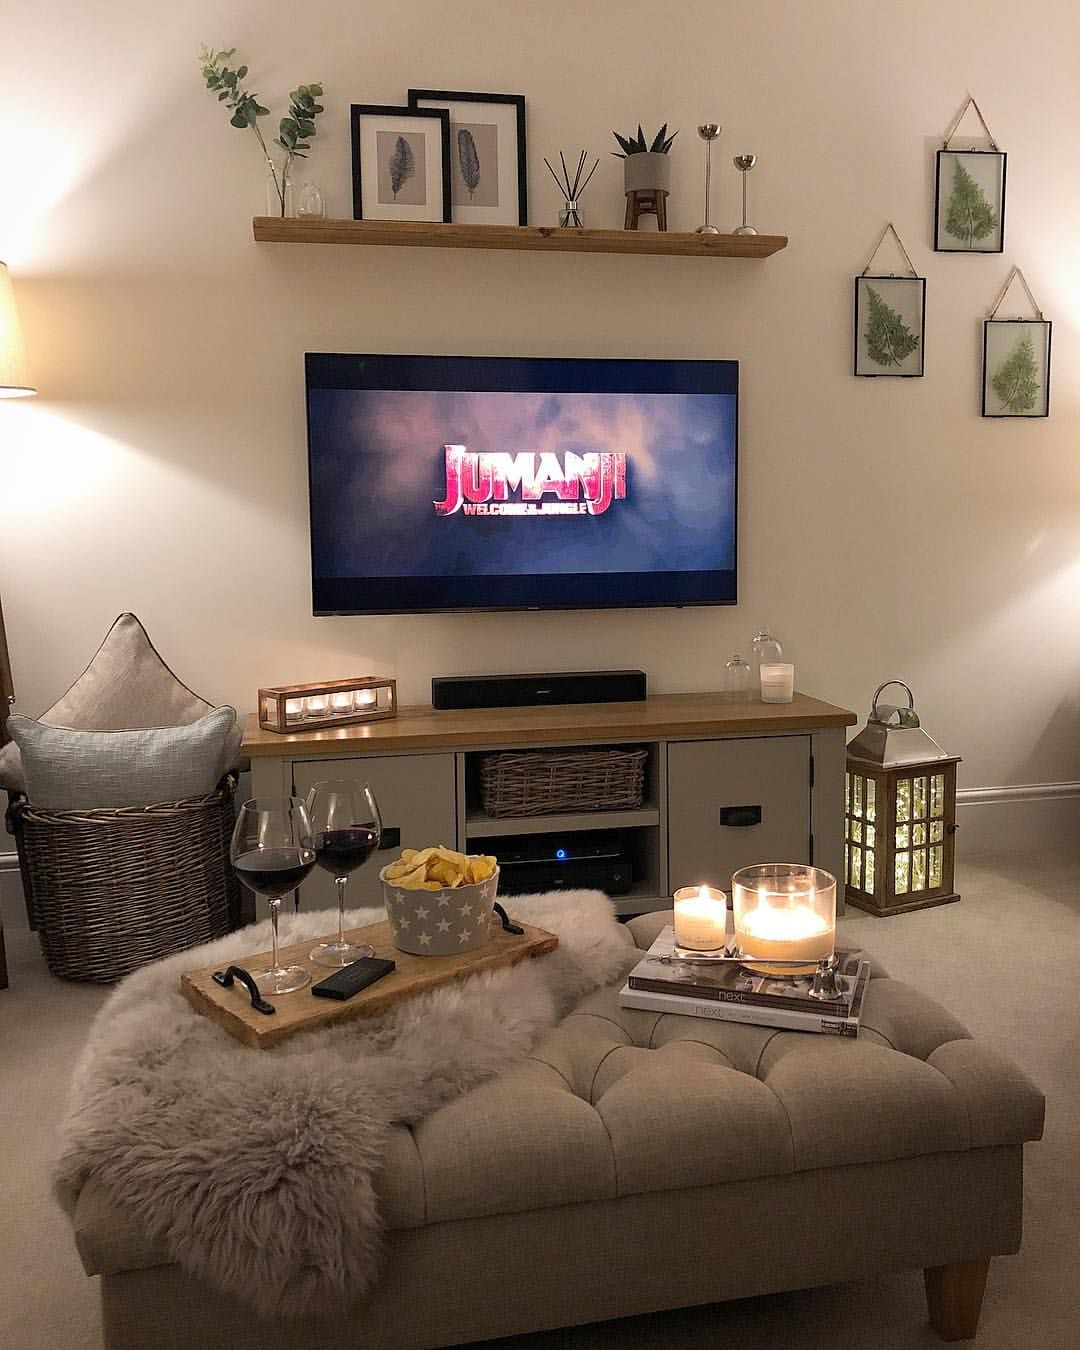 "Claire on Instagram: ""Cosy Sunday night in with red wine, snacks, candlelight and my current favourite film!👌🏼 If you haven't seen the new Jumanji film then you…"""